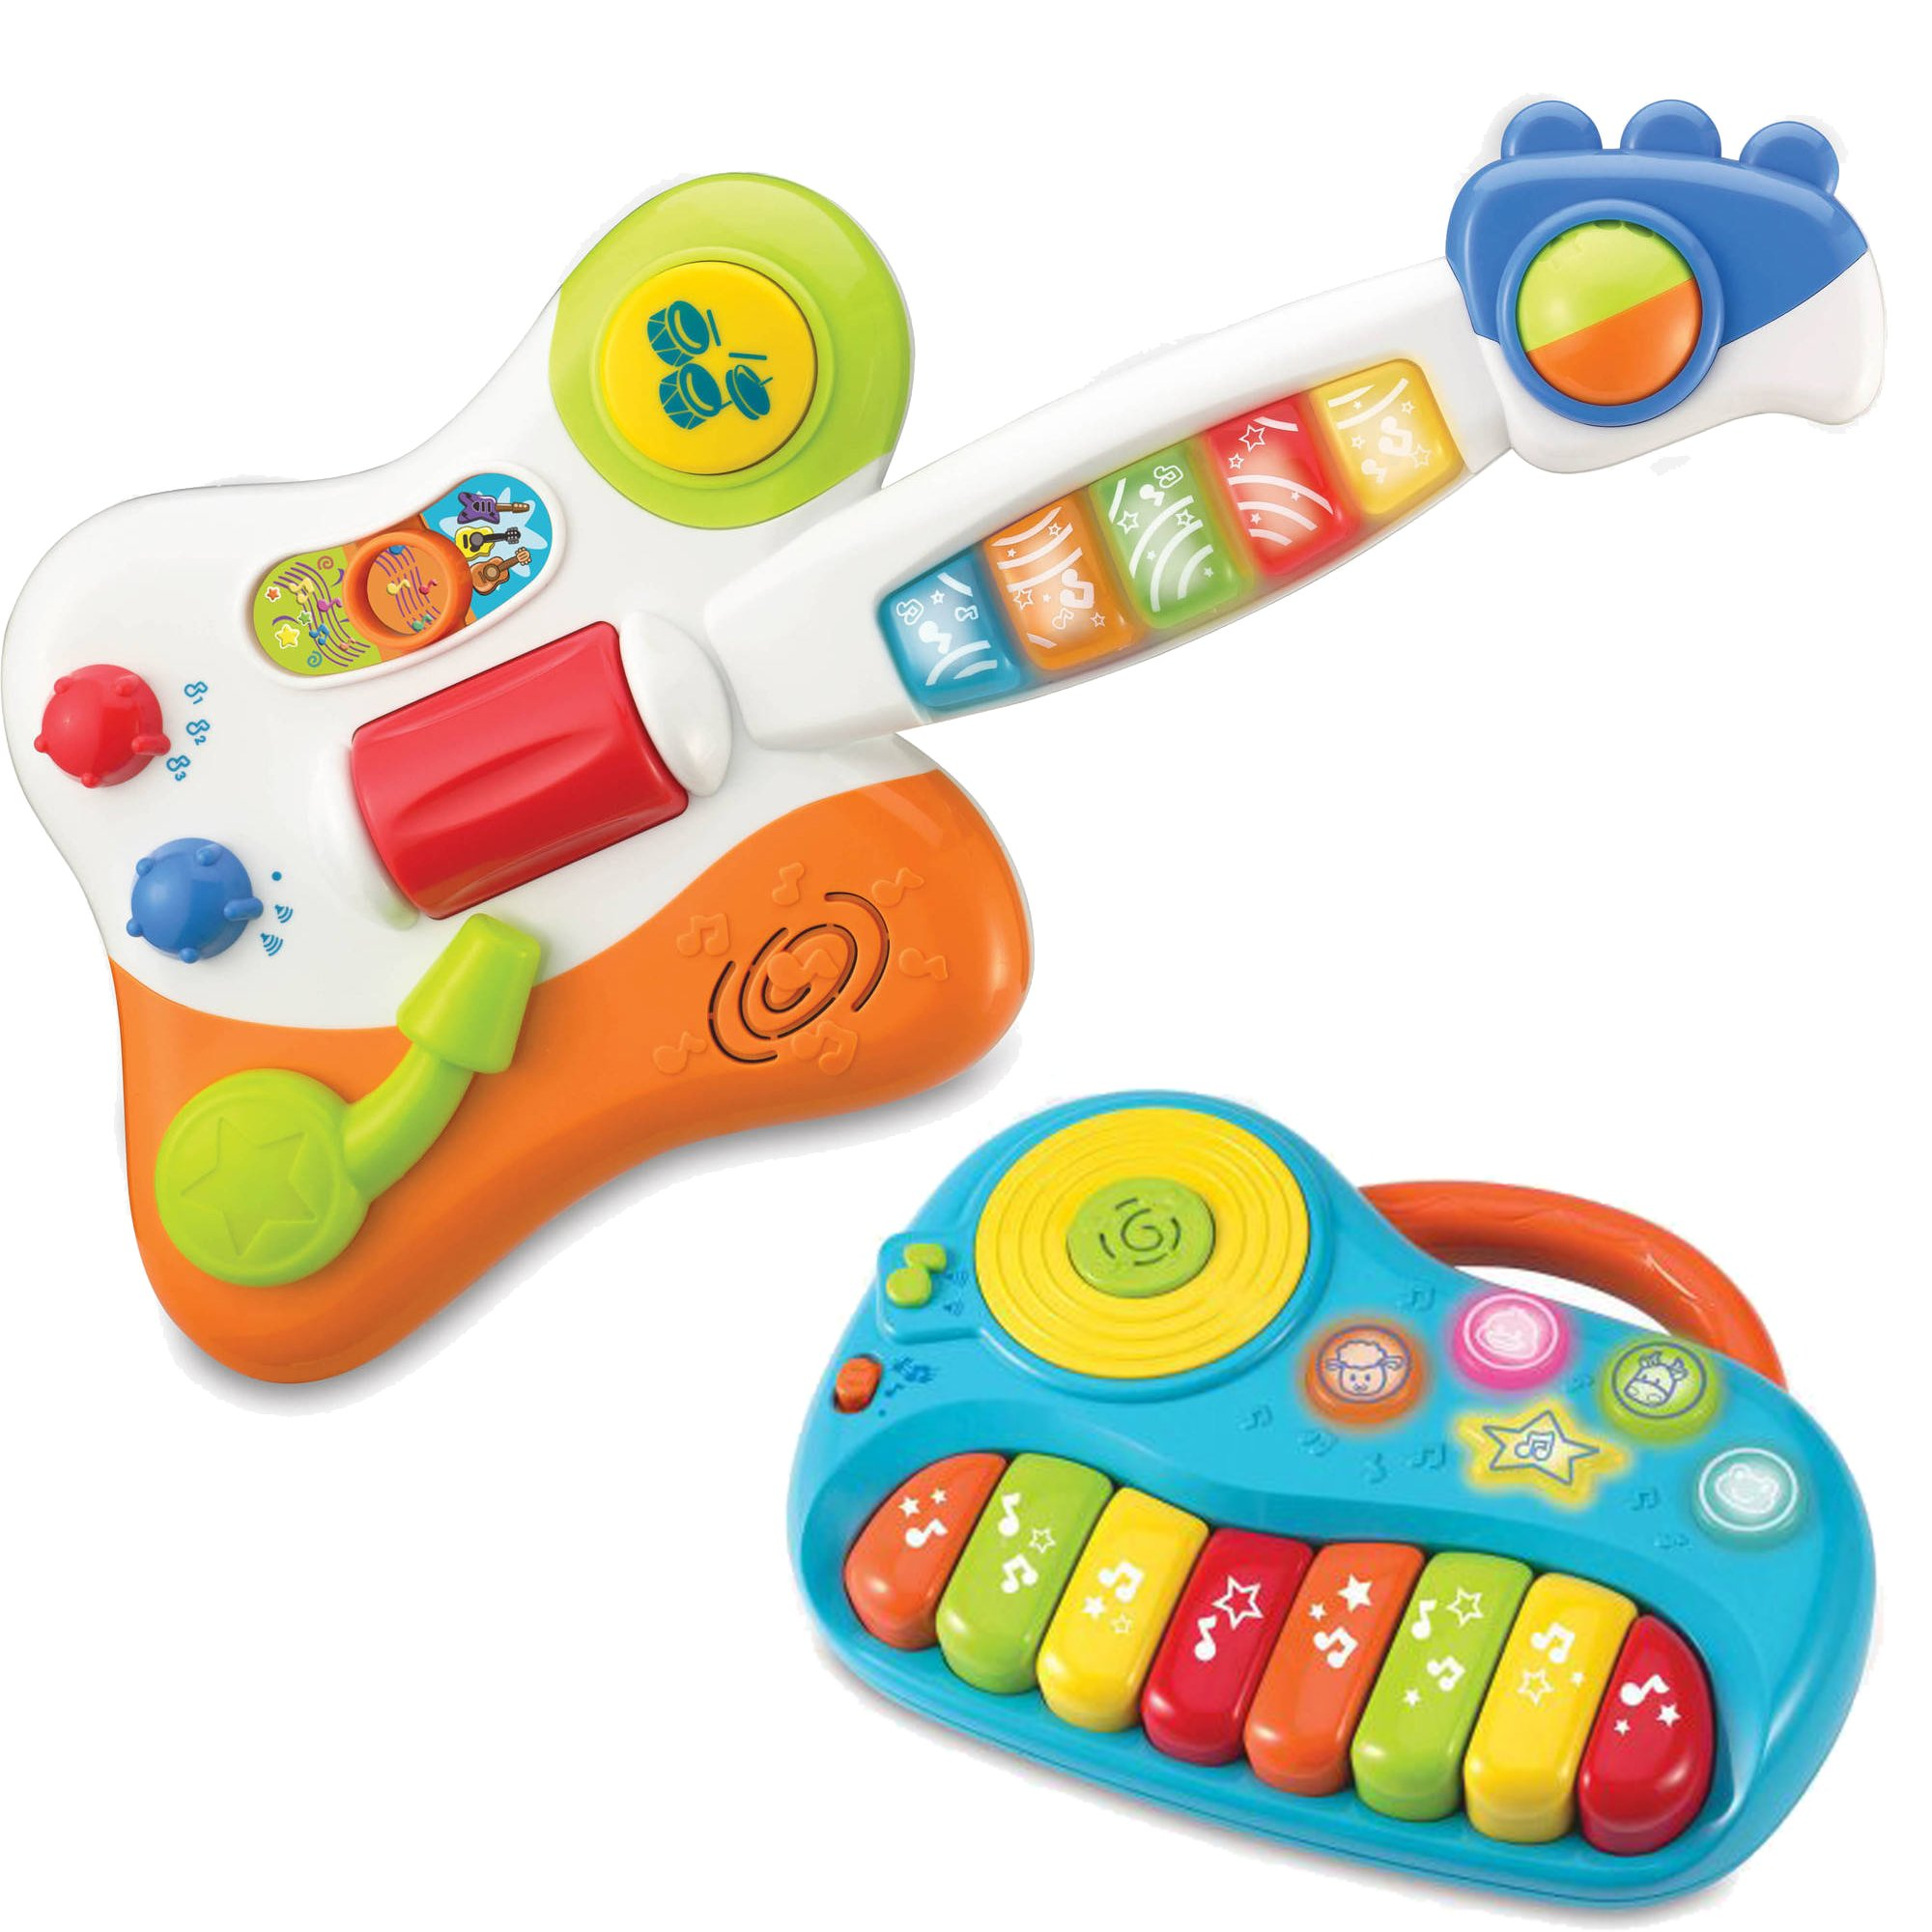 Little Virtuoso Piano Junior Kids Instrument Learning Activity Toys with Rock Jr. Guitar